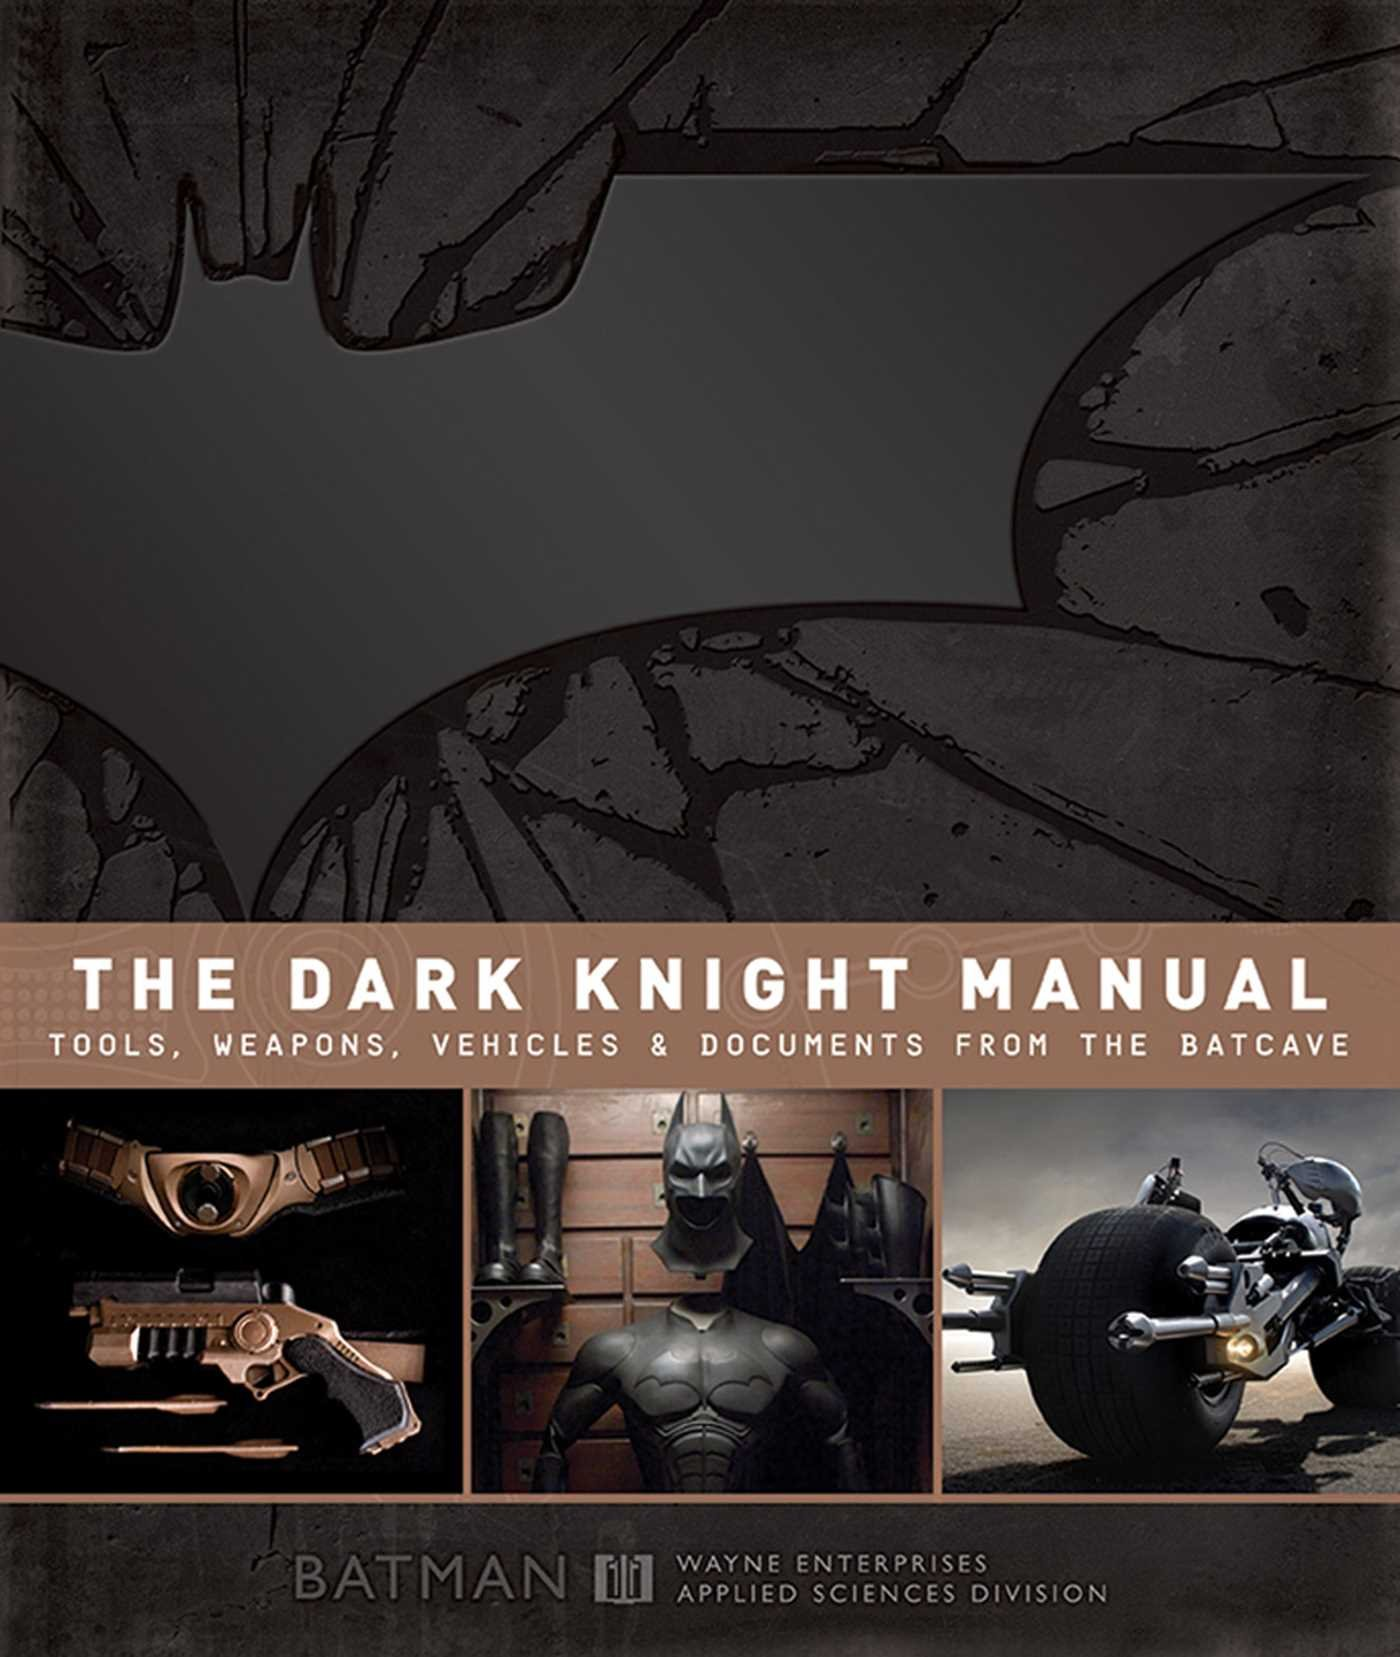 the dark knight manual tools weapons vehicles documents from rh amazon com dark knight manchester anniversary uk asus dark knight router manual